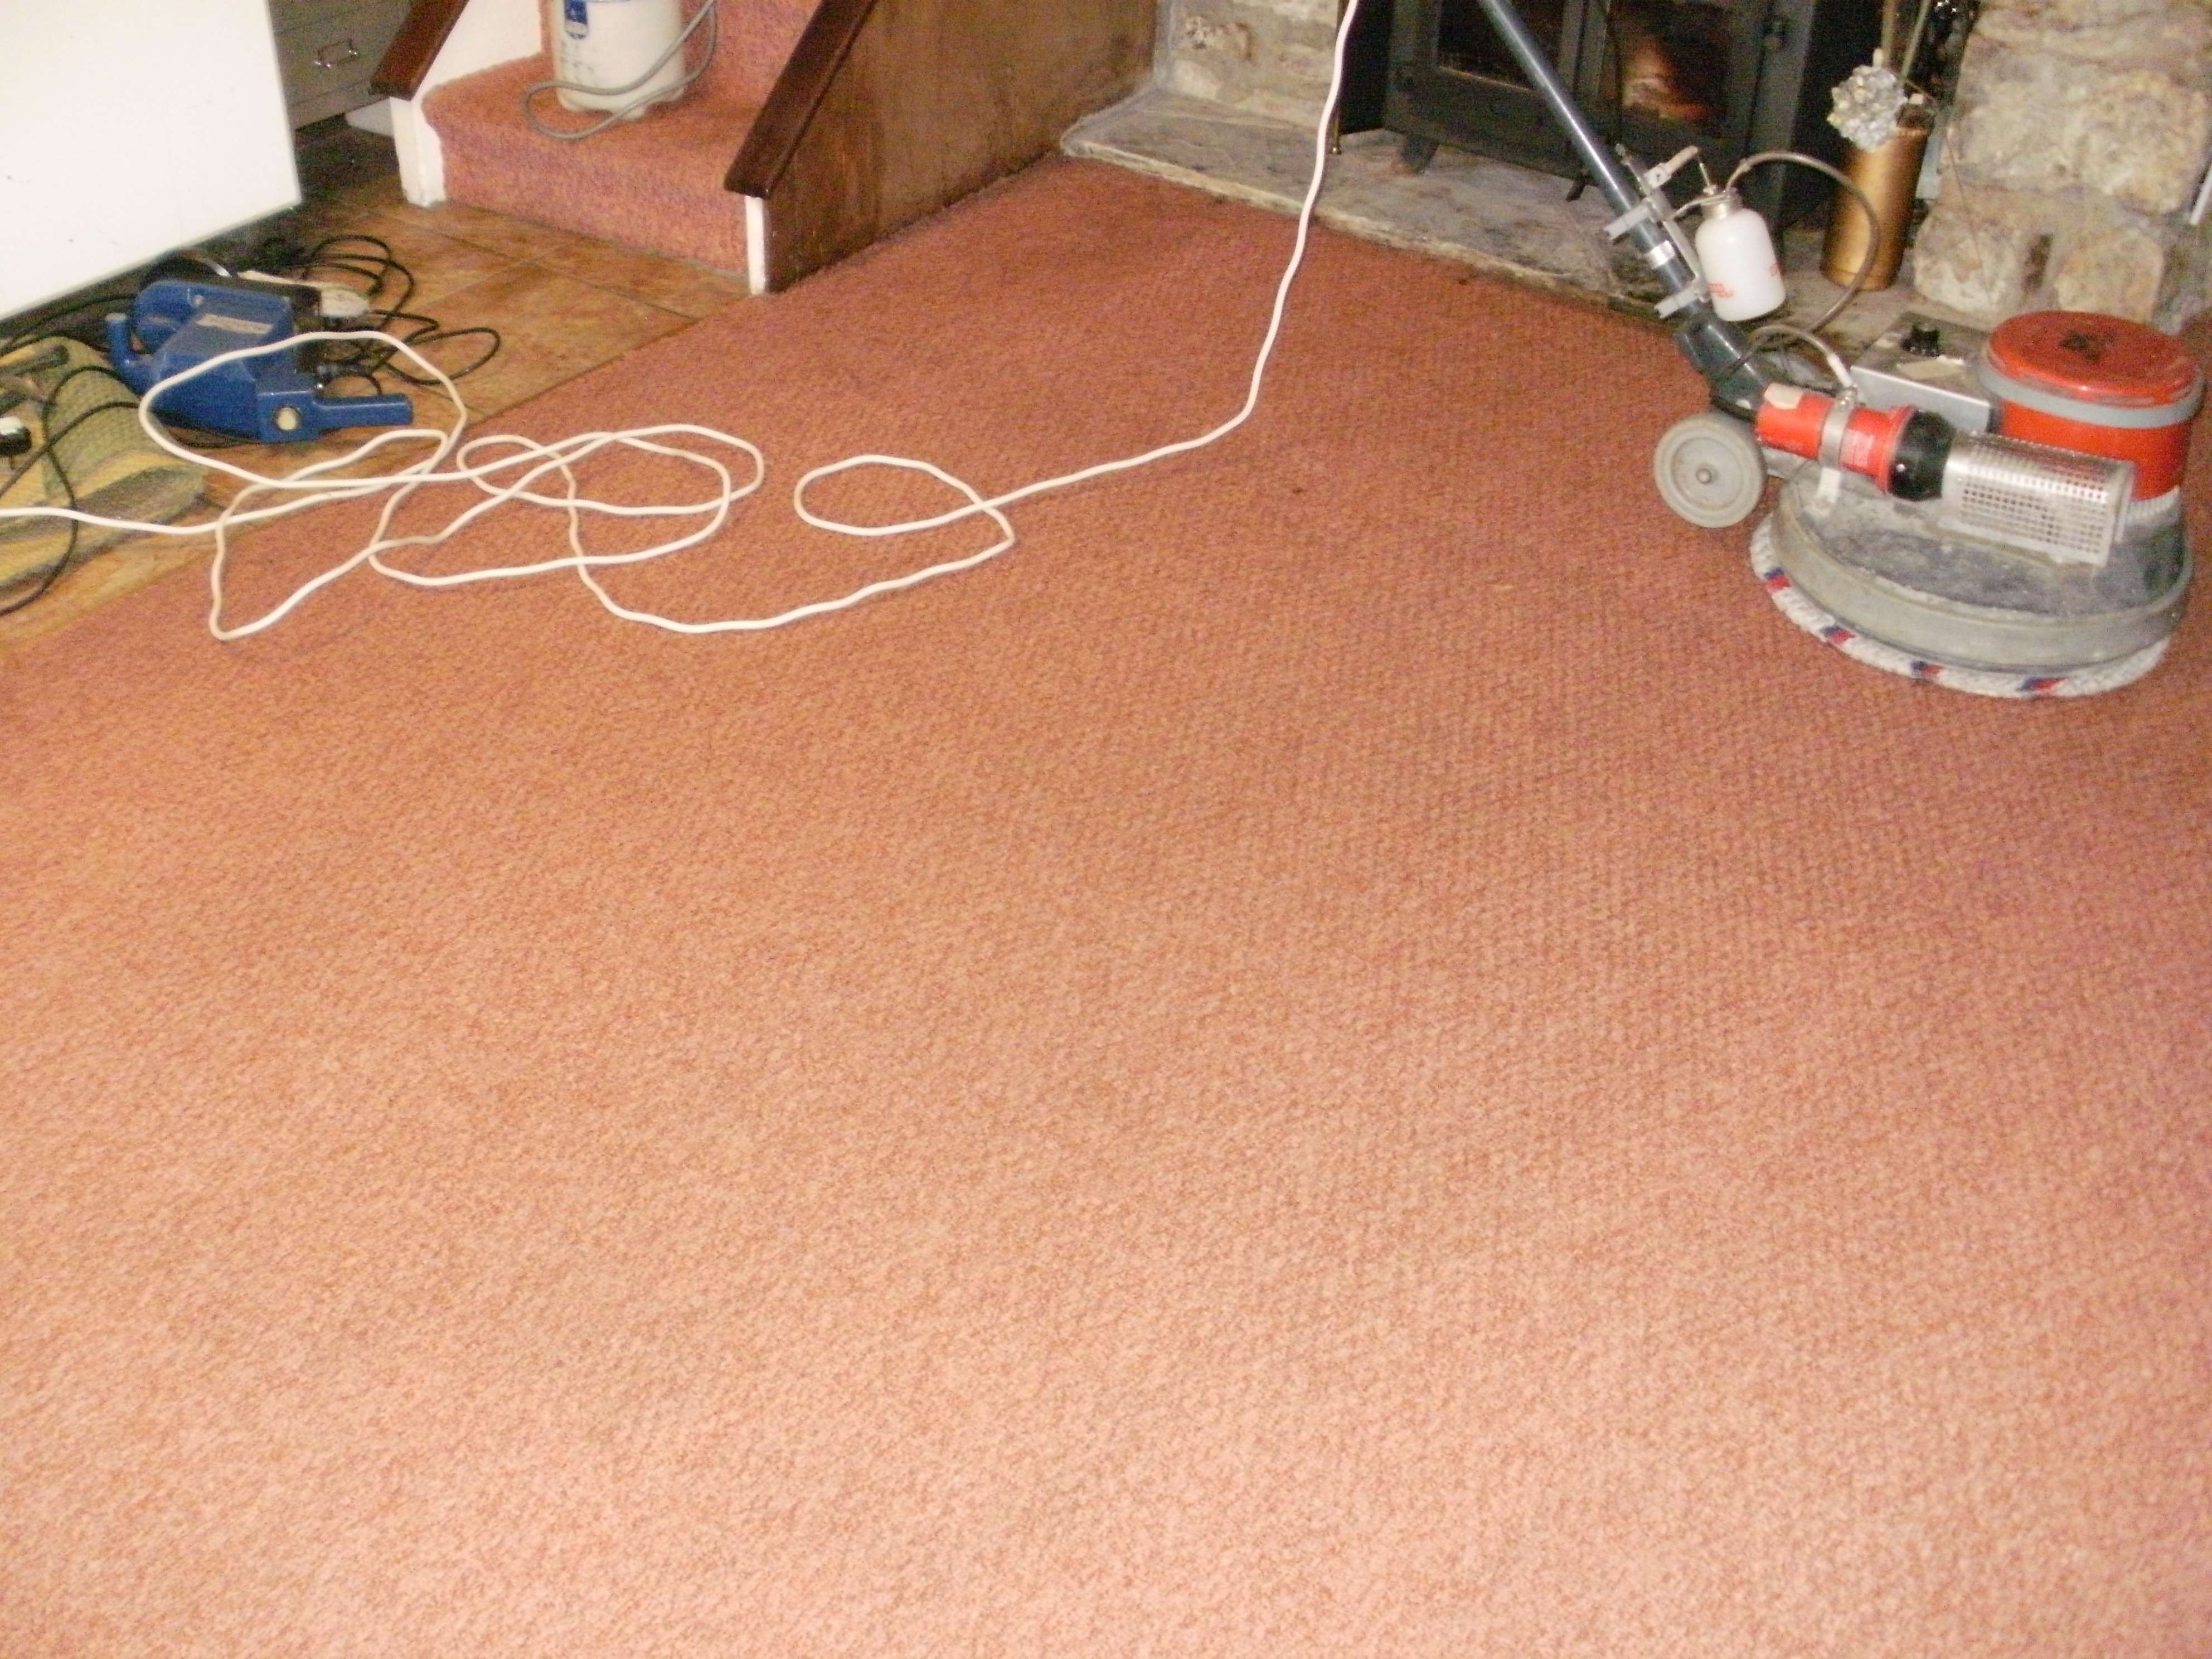 Stains lifted from a carpet